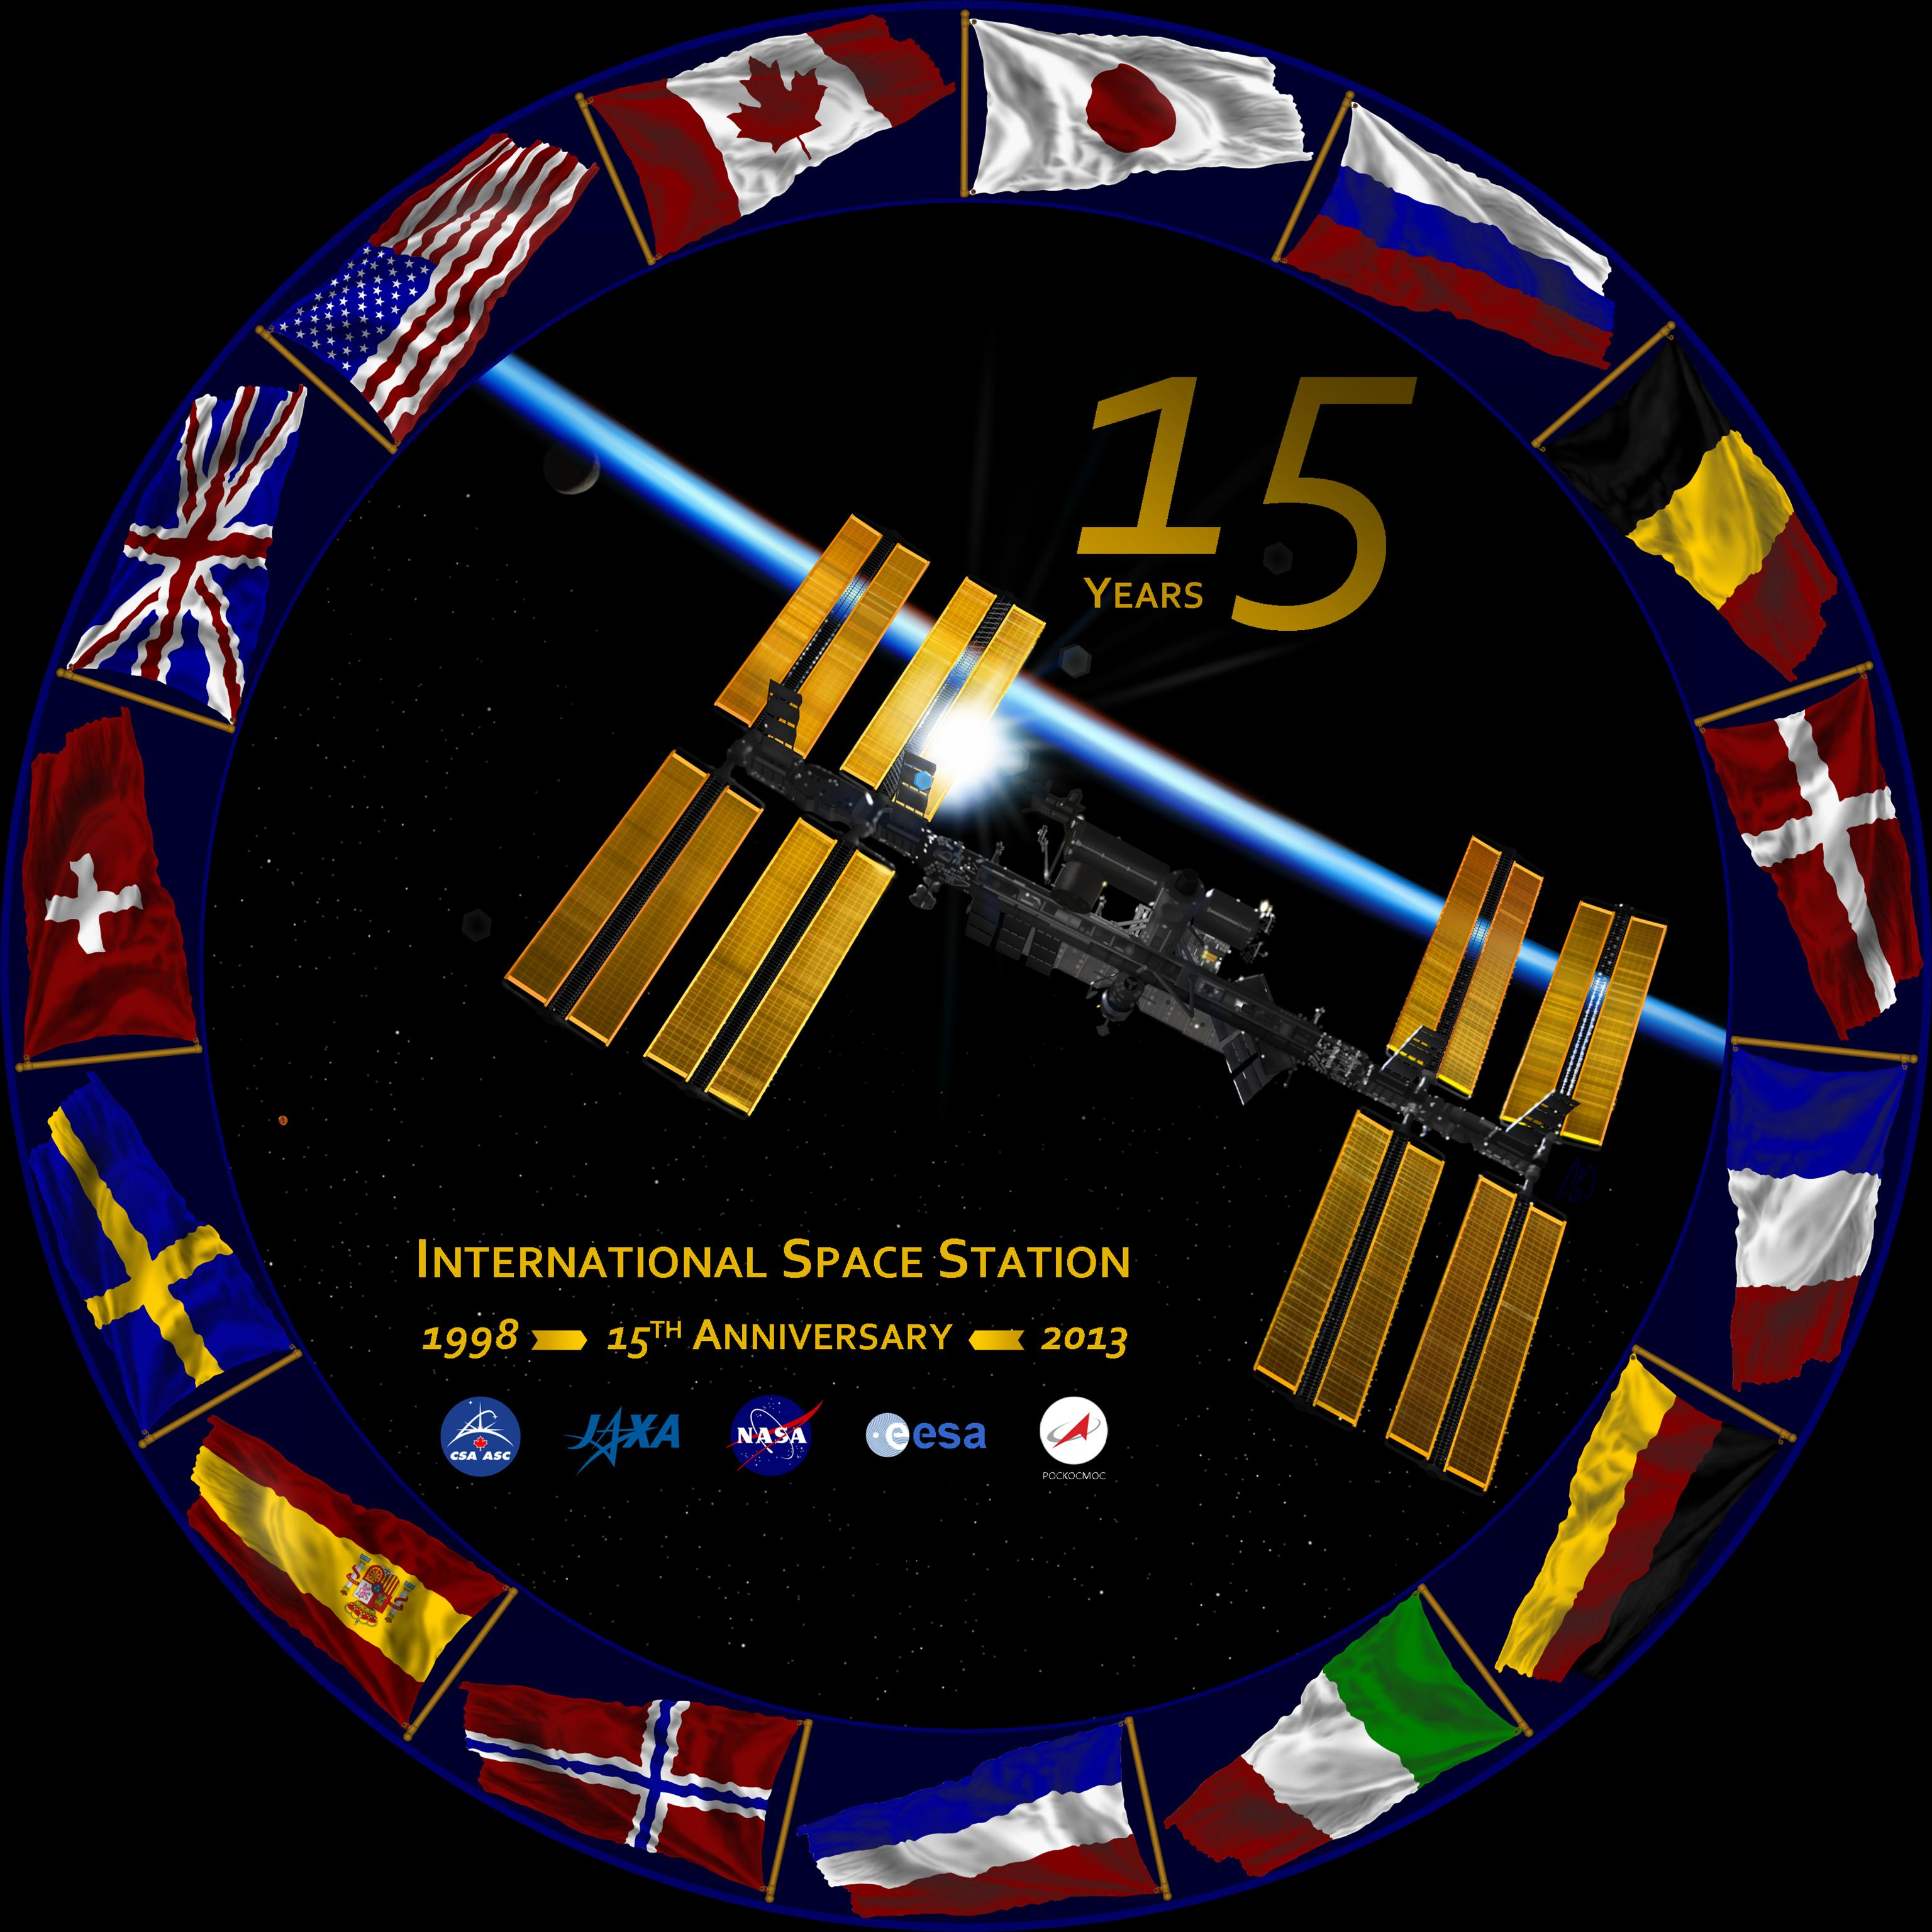 An International Space Station 15th anniversary logo, which Jansen completed using PowerPoint. Image Credit: NASA/Michael Jansen